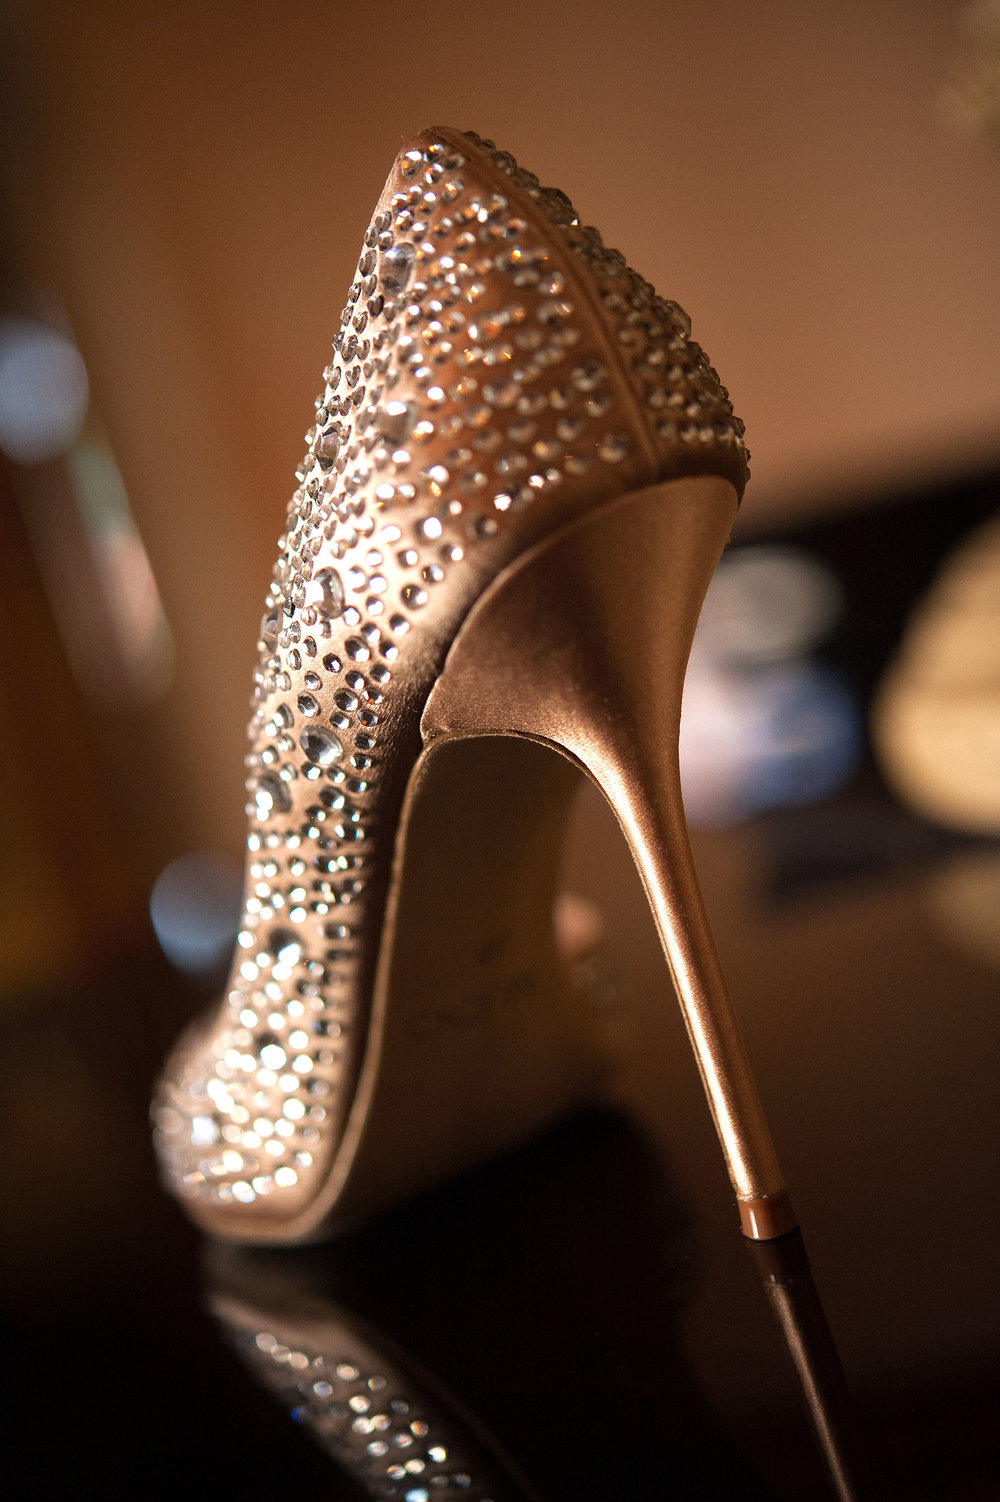 Gold and crystal high heel bride's wedding shoe.